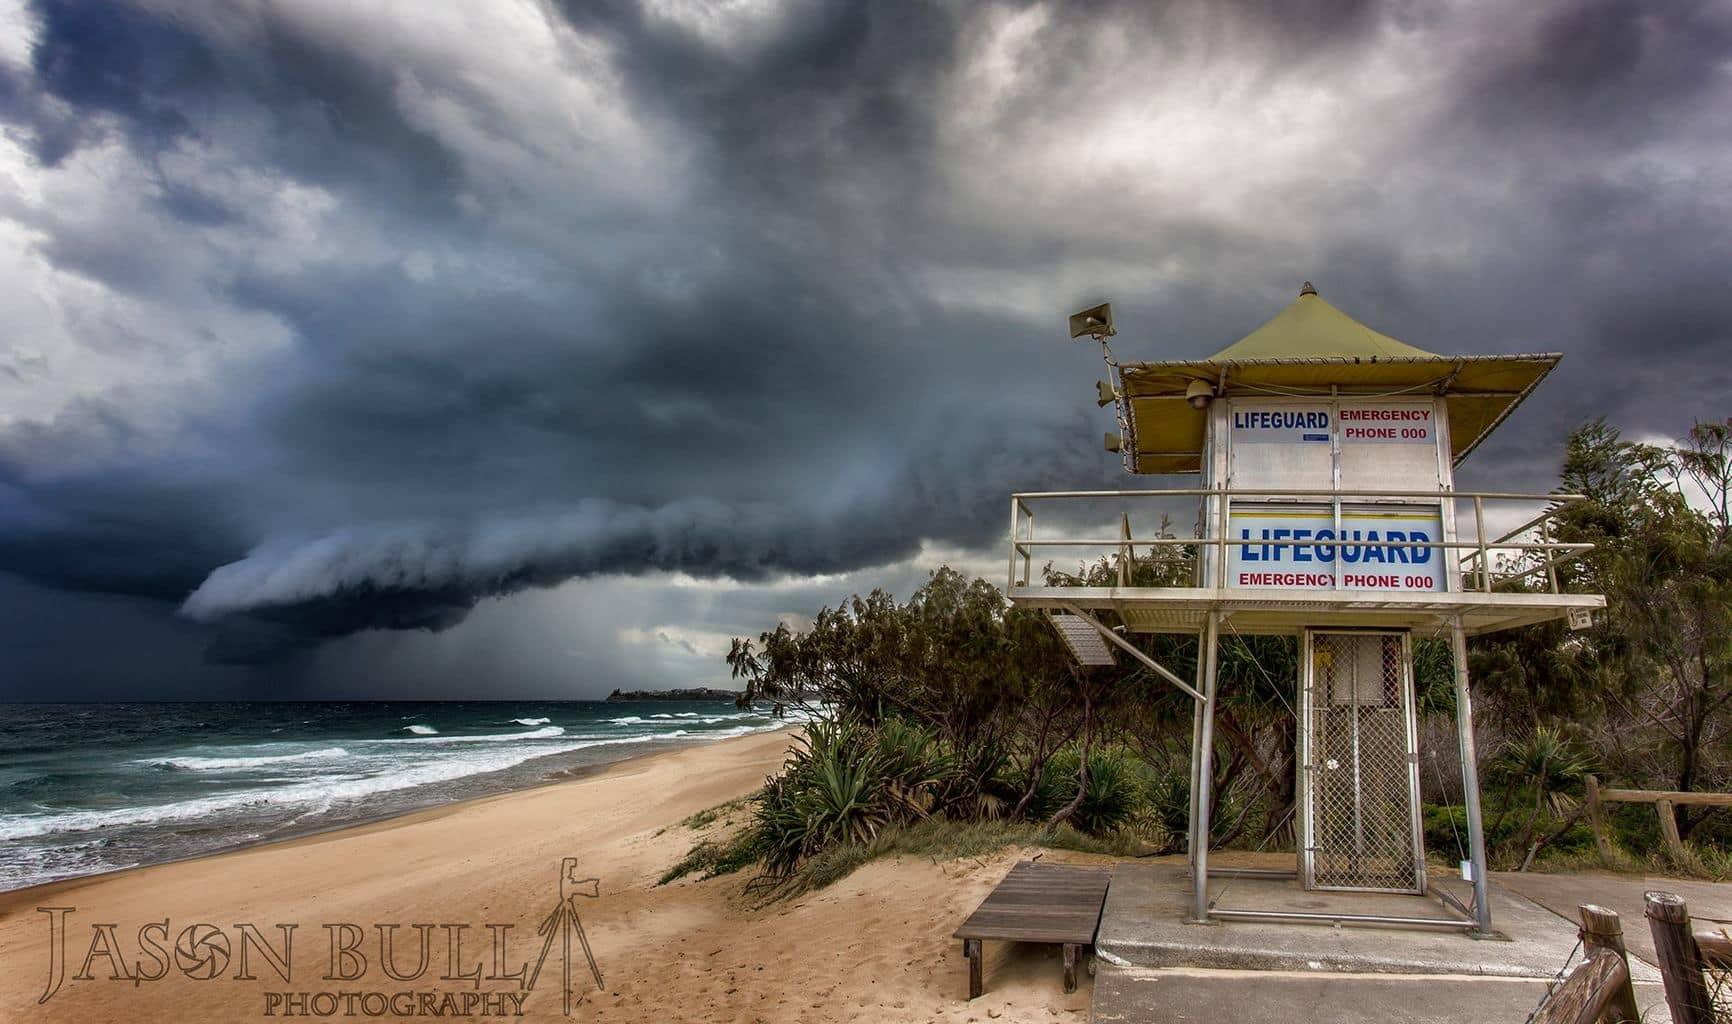 Cant remember if I have posted this one, but was a nice little cell on the sunshine coast QLD Australia